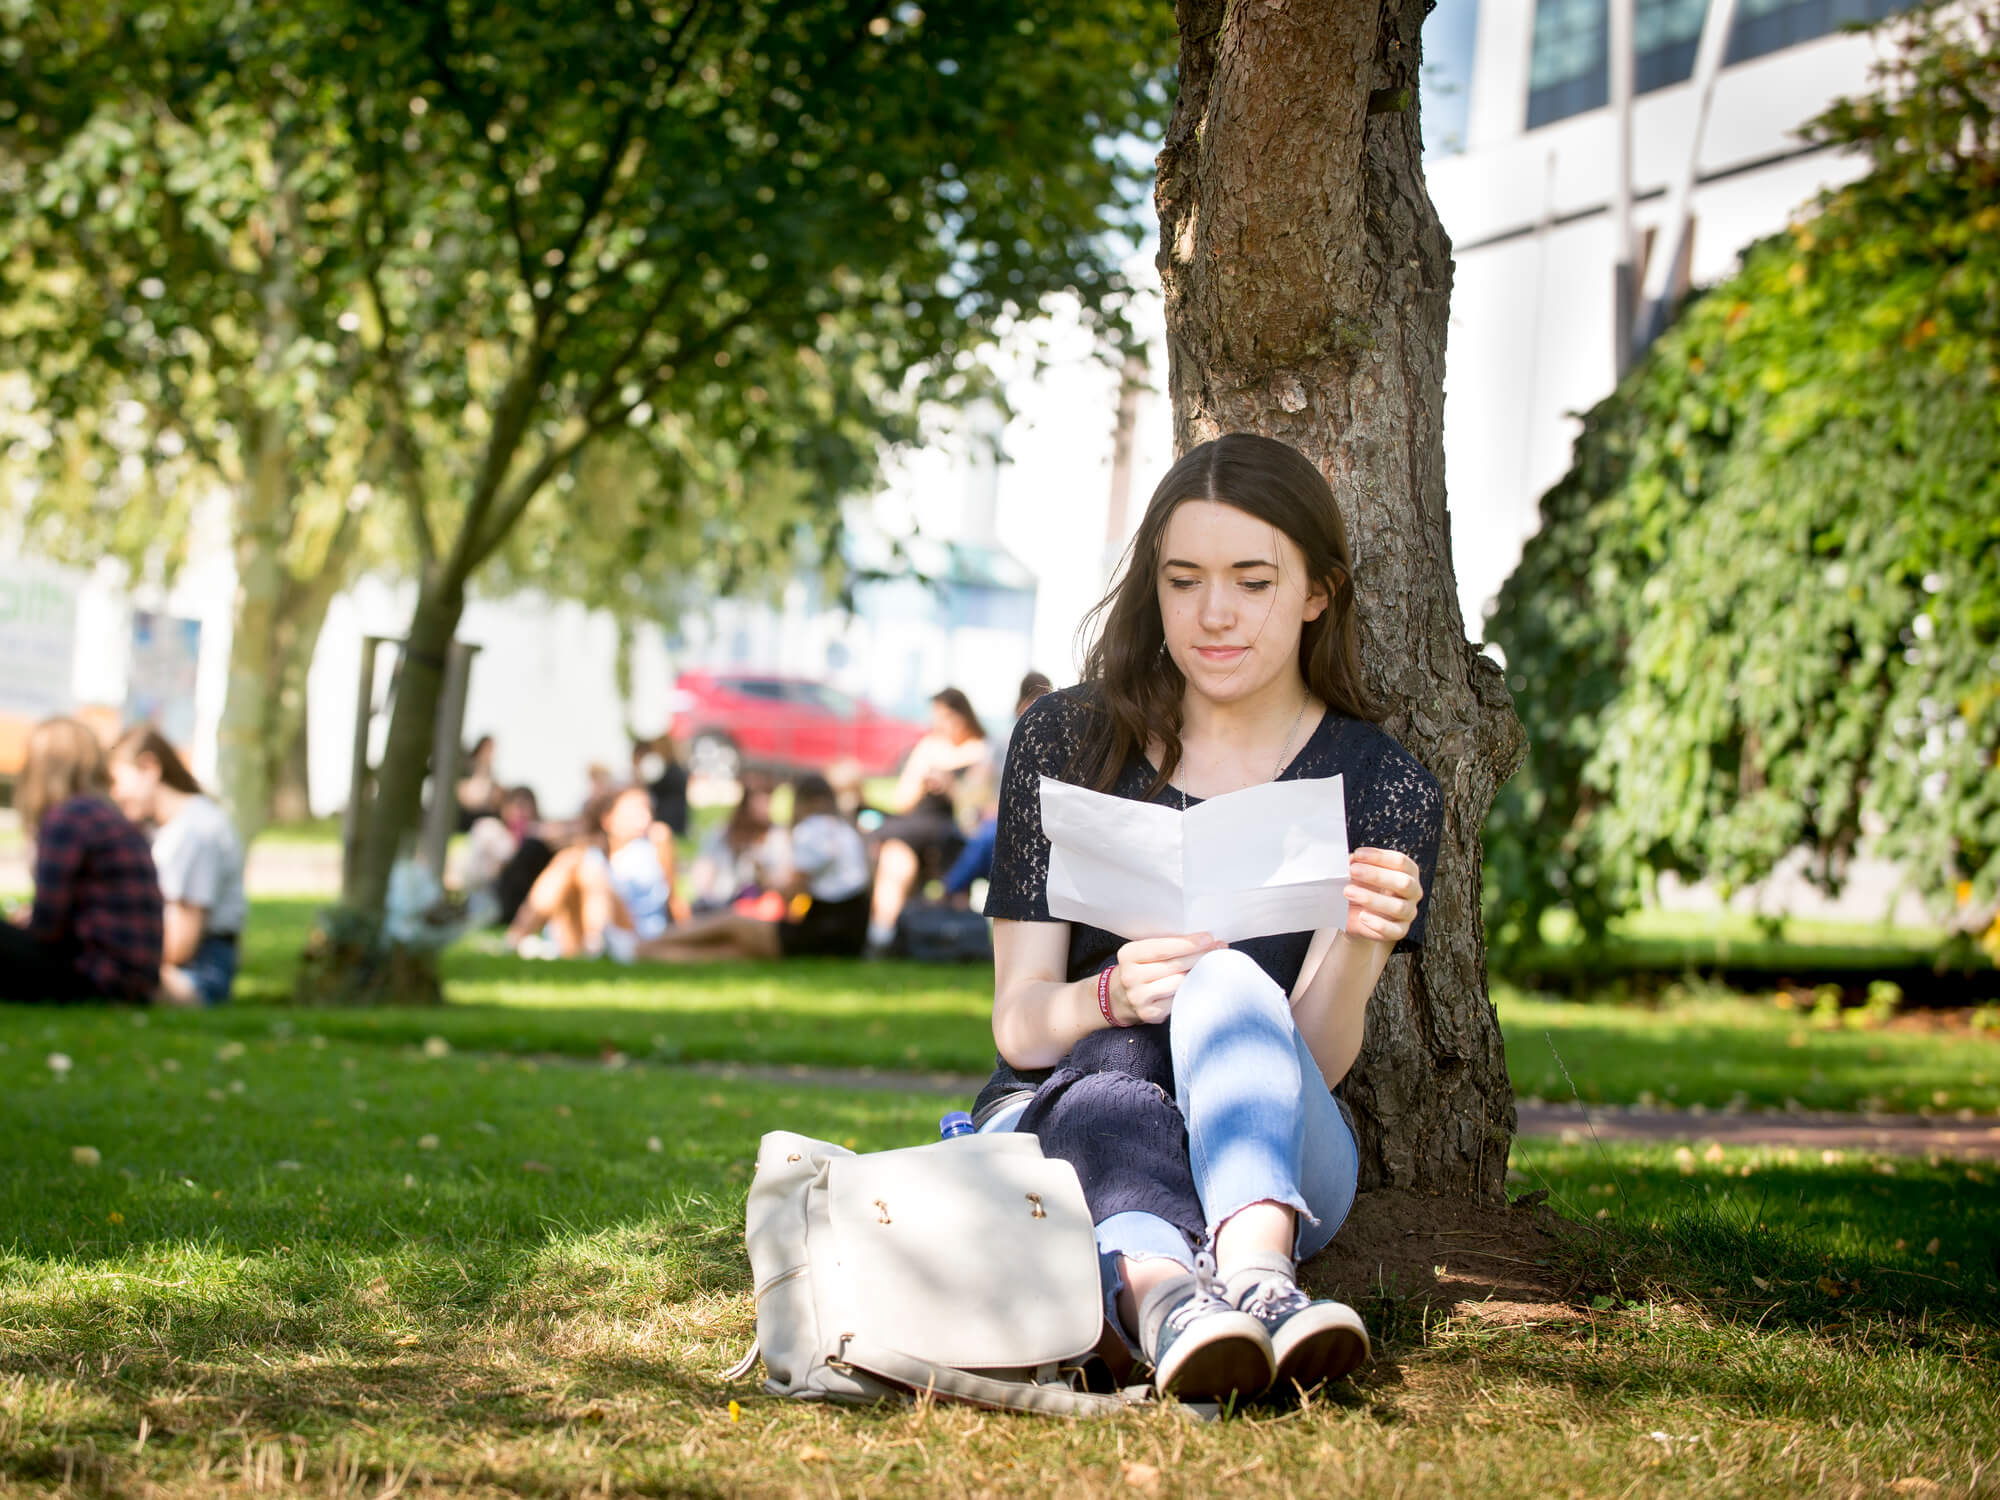 Student reading outside the university under a tree